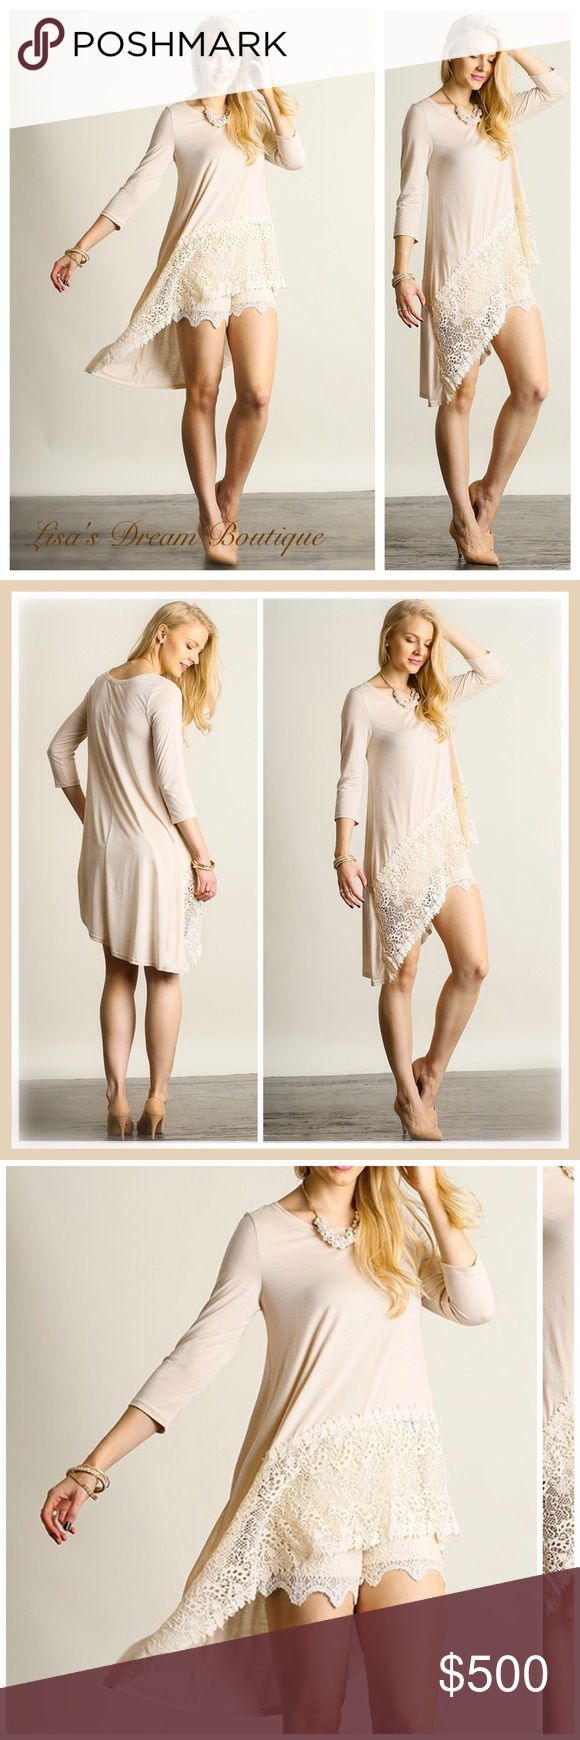 ✨Coming Soon✨Asymmetrical Lace Tunic •Oatmeal• Absolutely gorgeous tunic with asymmetrical lace hemline in a beautiful neutral cream color....Classic piece that can be worn any time of year. Lightweight and cotton blend, will be comfortable and lovely to wearNO TRADESPRICE WILL BE FIRM UNLESS BUNDLED25% OFF BUNDLES {Limited Time}  Like this listing to be notified of arrival LDB Tops Tunics